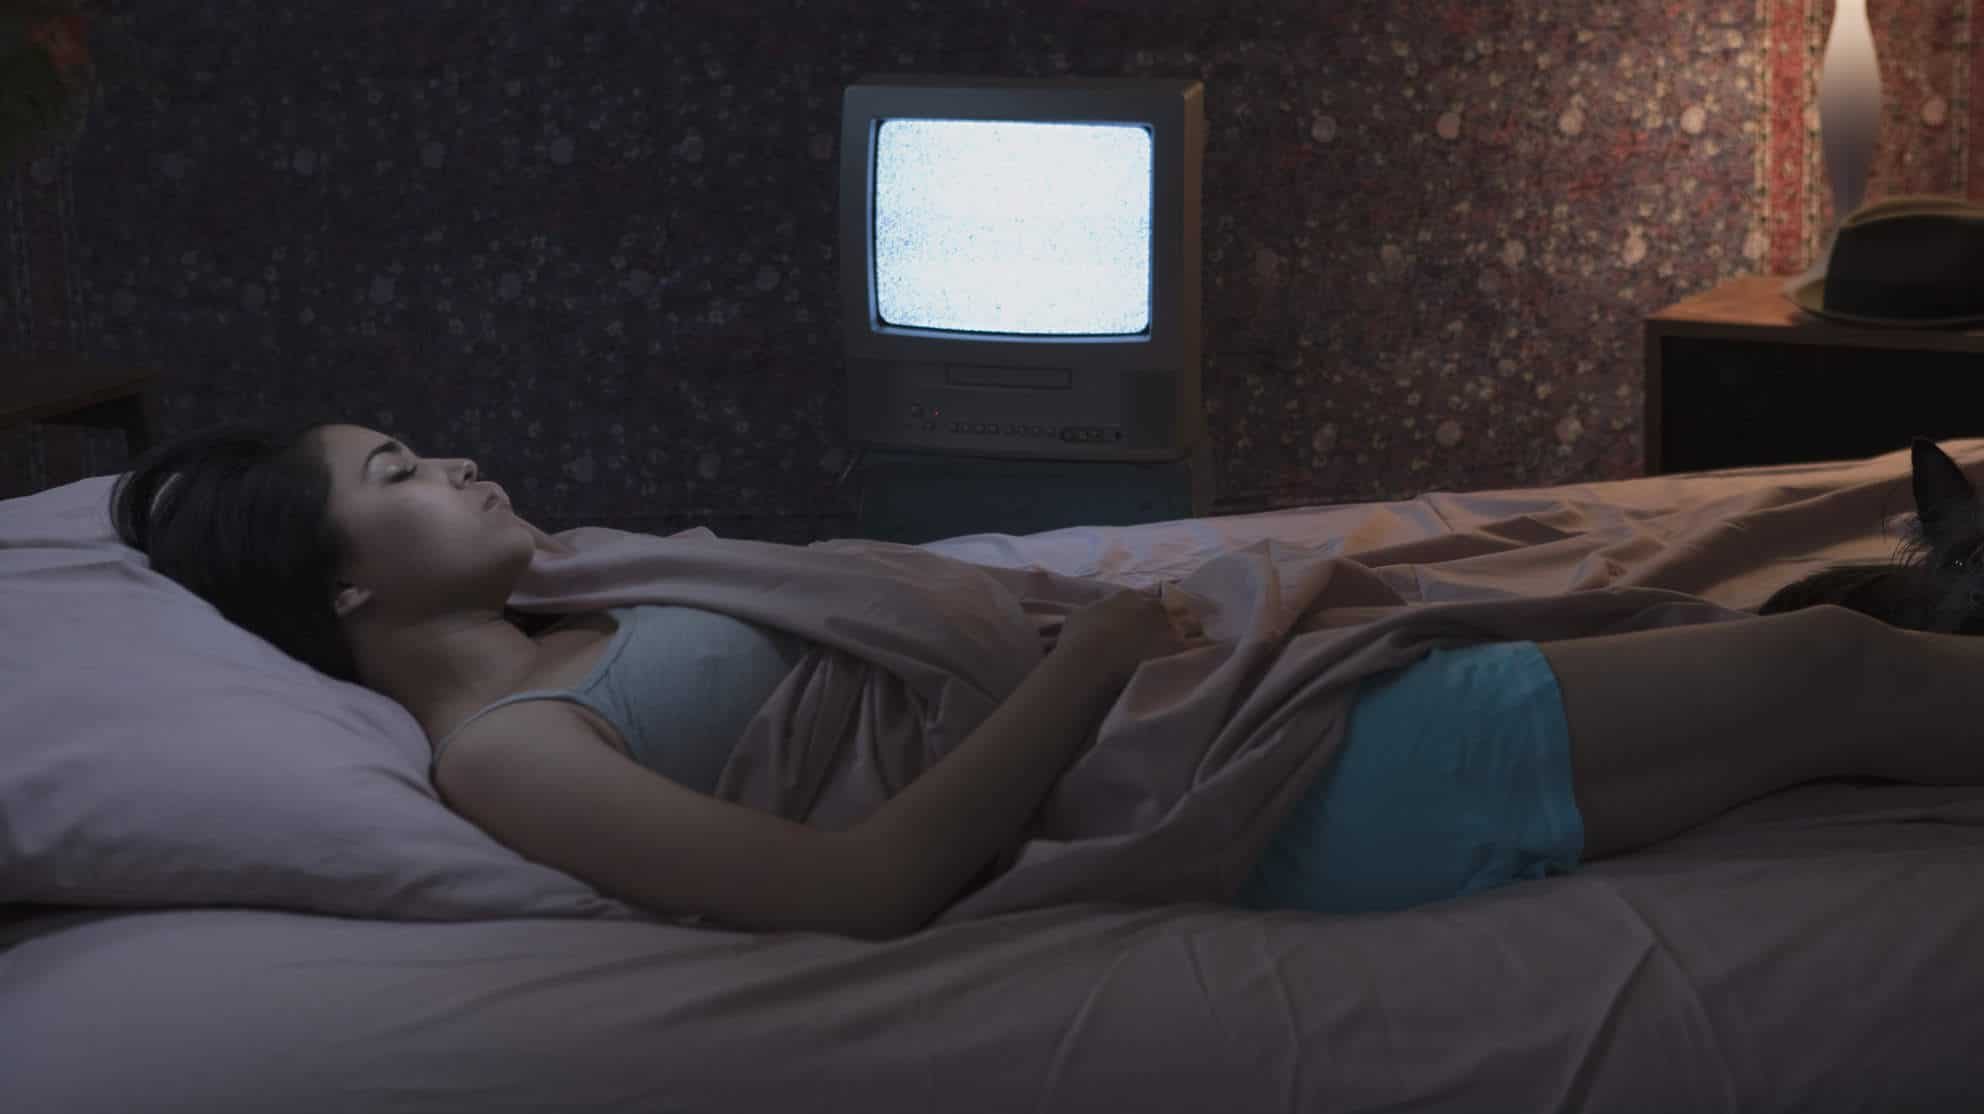 Woman sleeping with television on